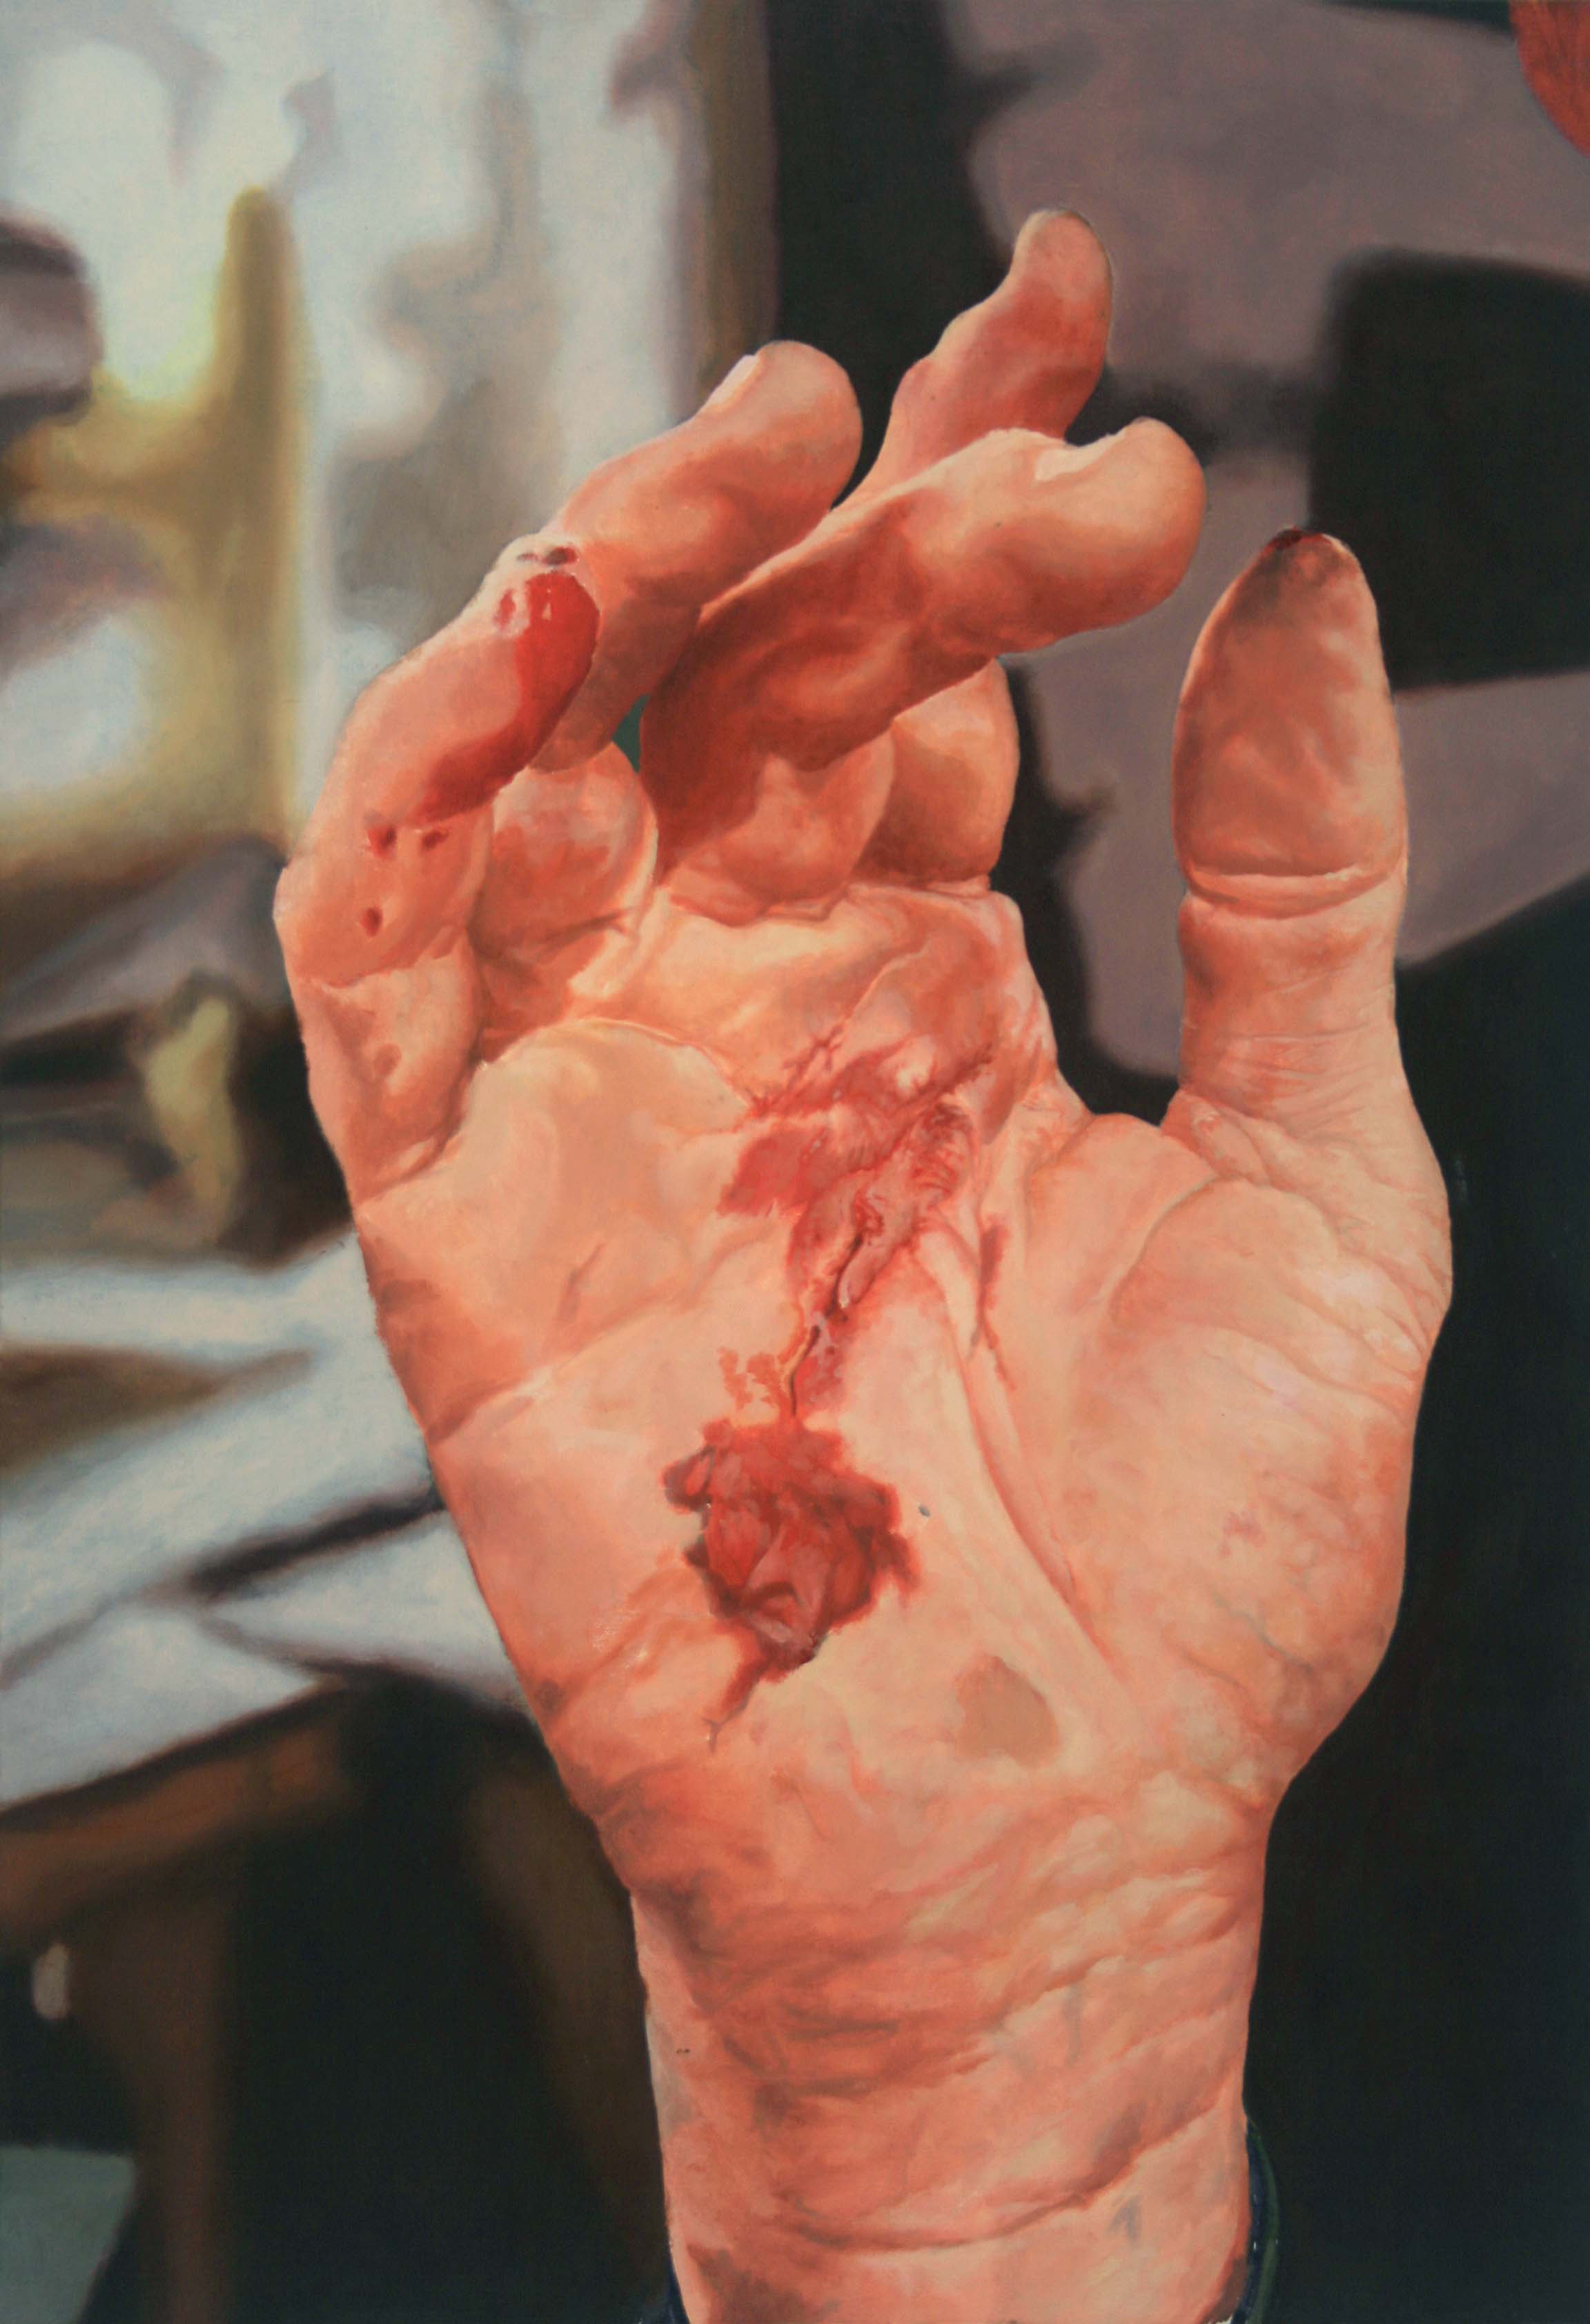 Painting of a white hand with a cut on the palm